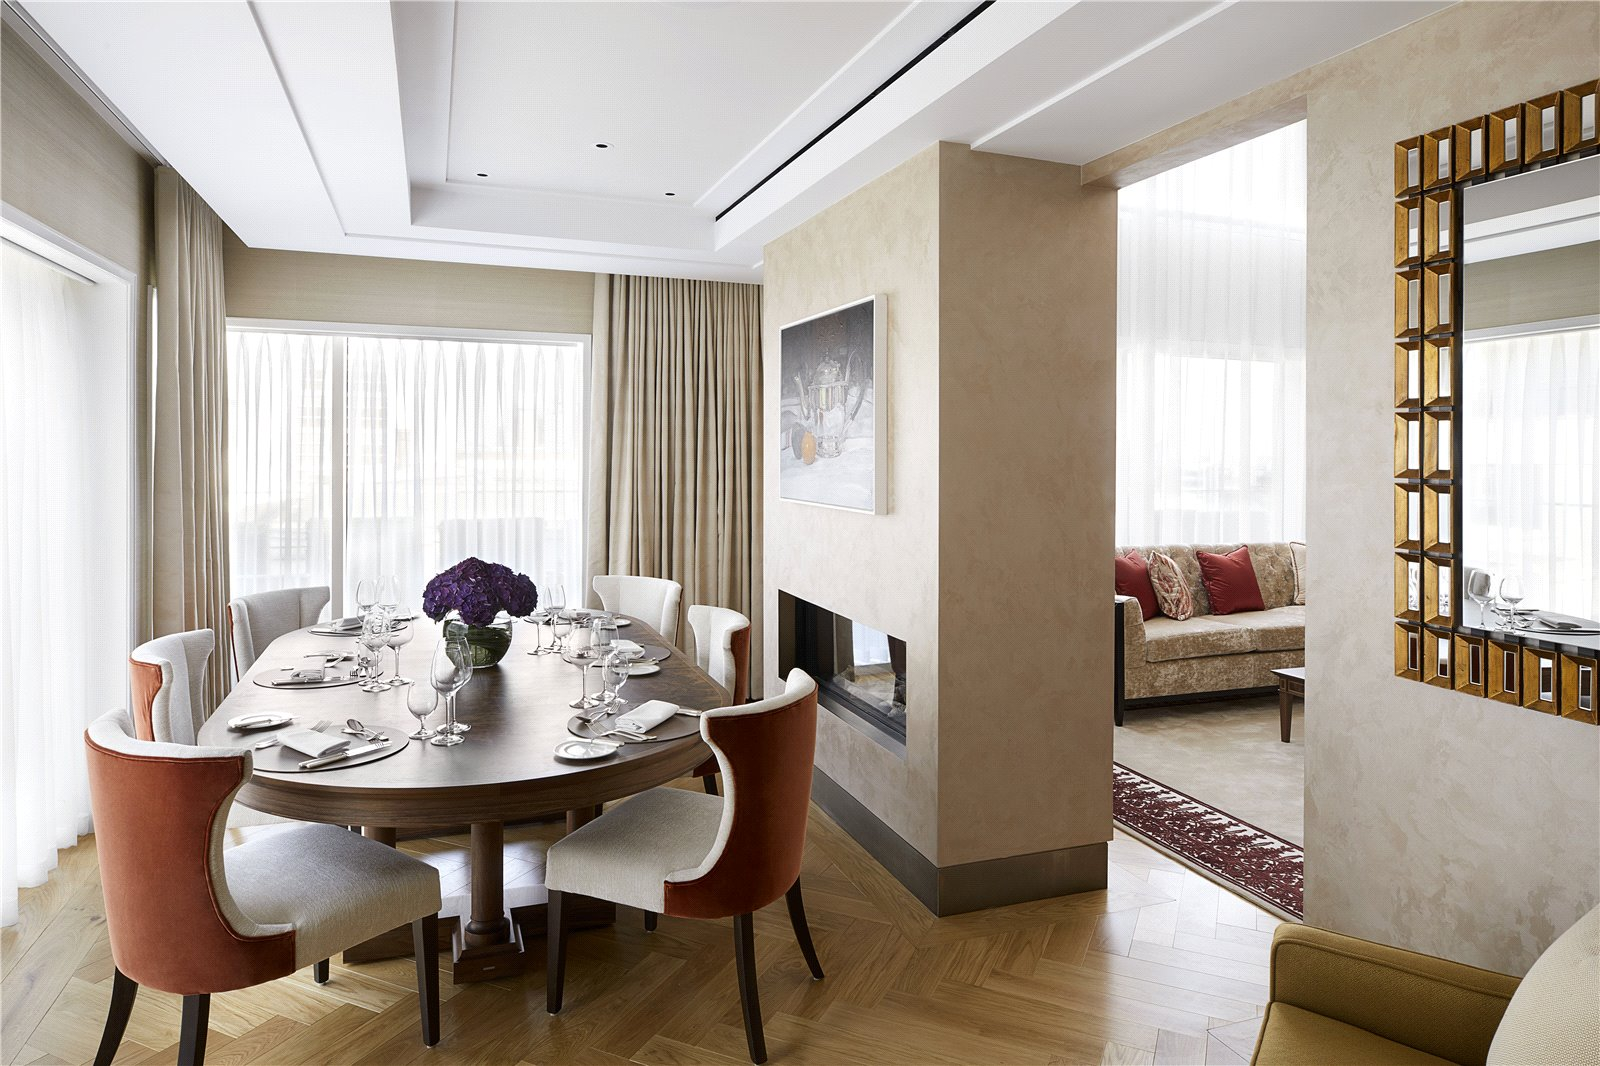 Apartment for Rent at Trinity Square, Tower Hil, London, EC3N Trinity Square, Tower Hil, London, EC3N